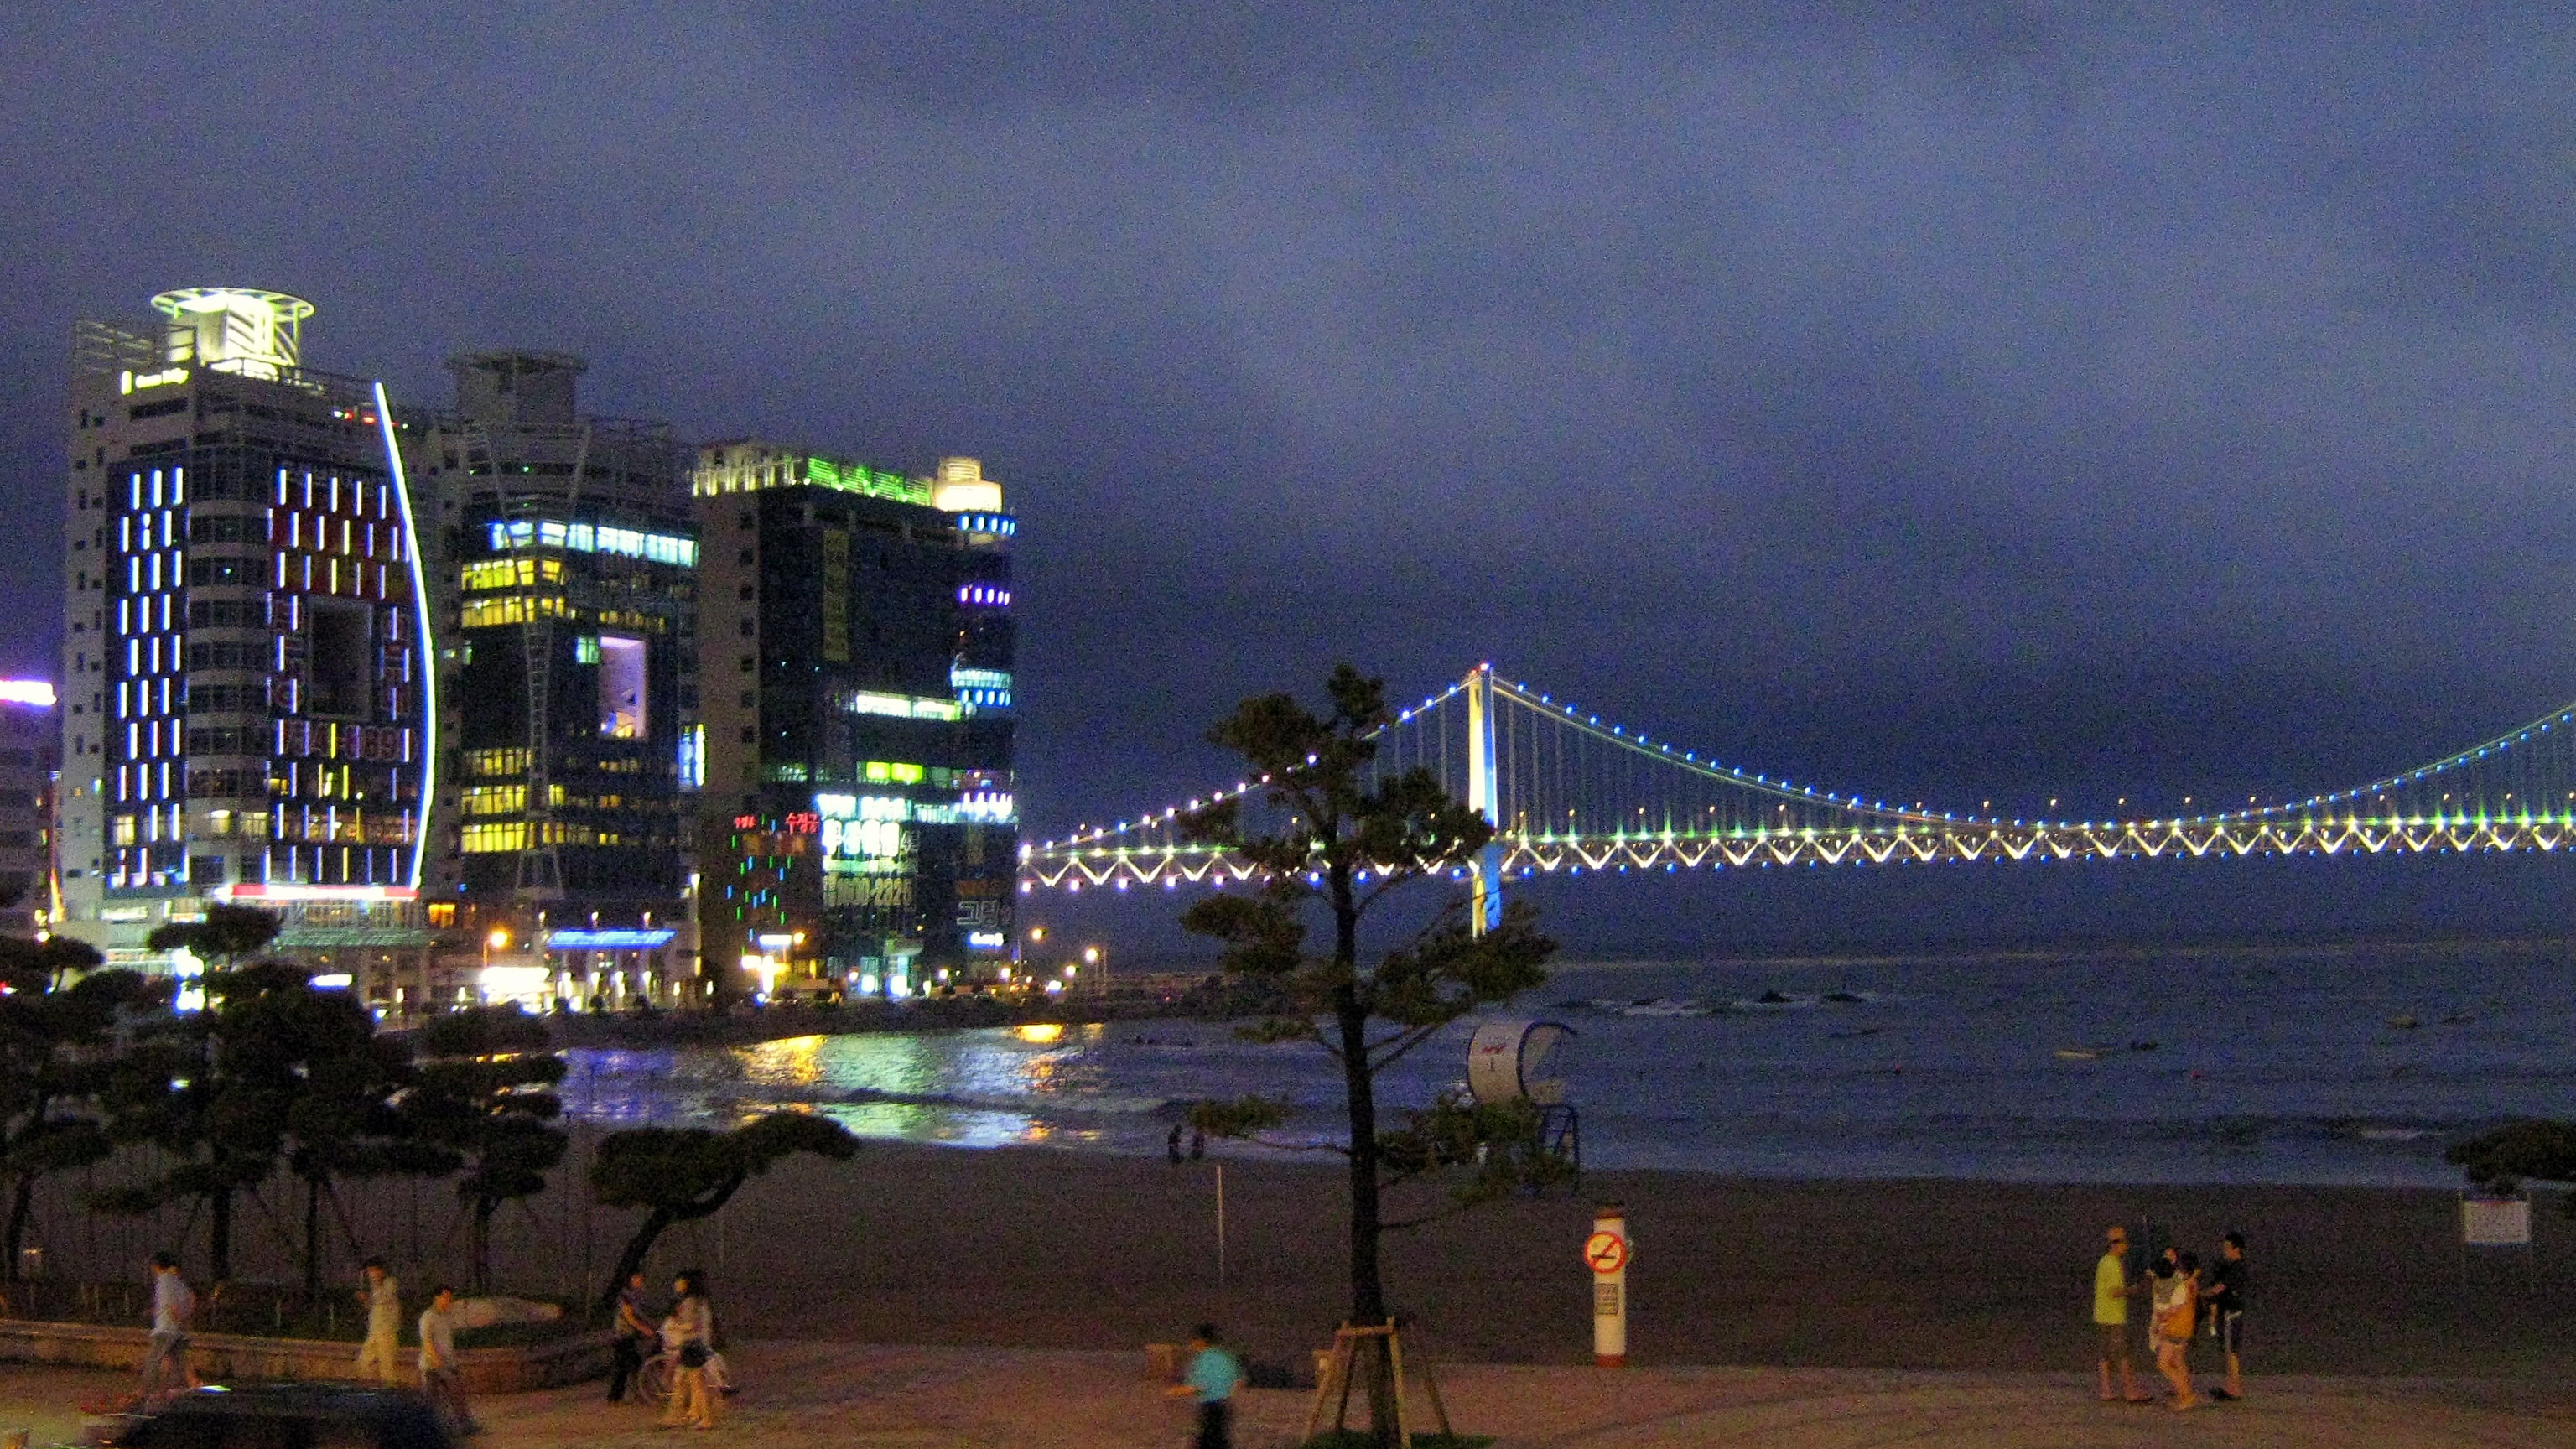 Gwangalli Beach Busan, Korea: A Post Hoc Analysis, Part 1 (Busan) | the adventures of a ...